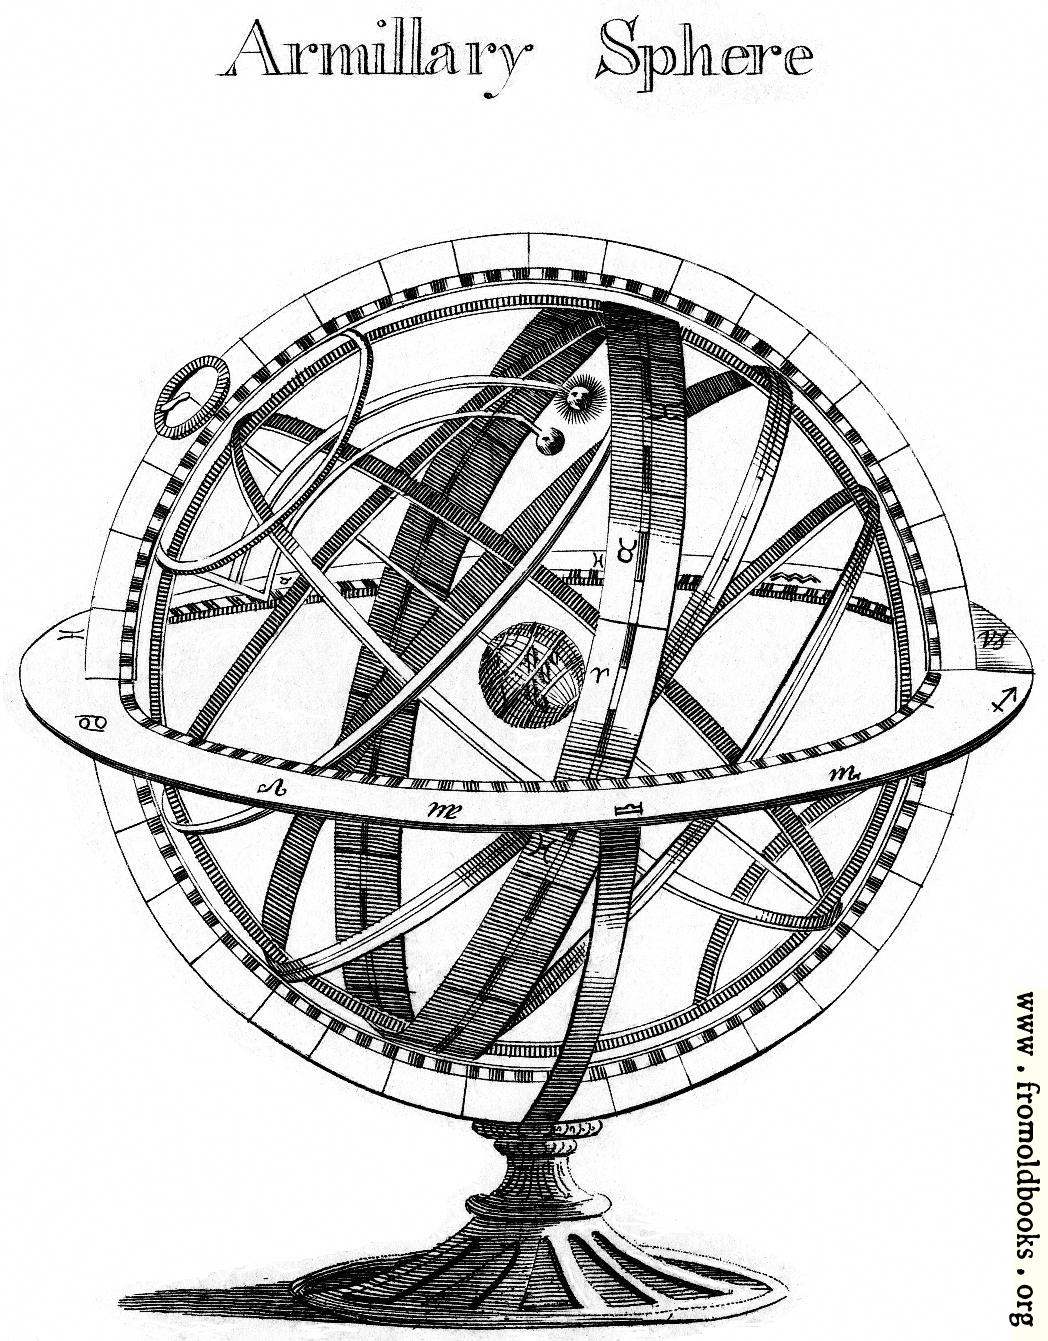 [Picture: 21.—Armillary Sphere]